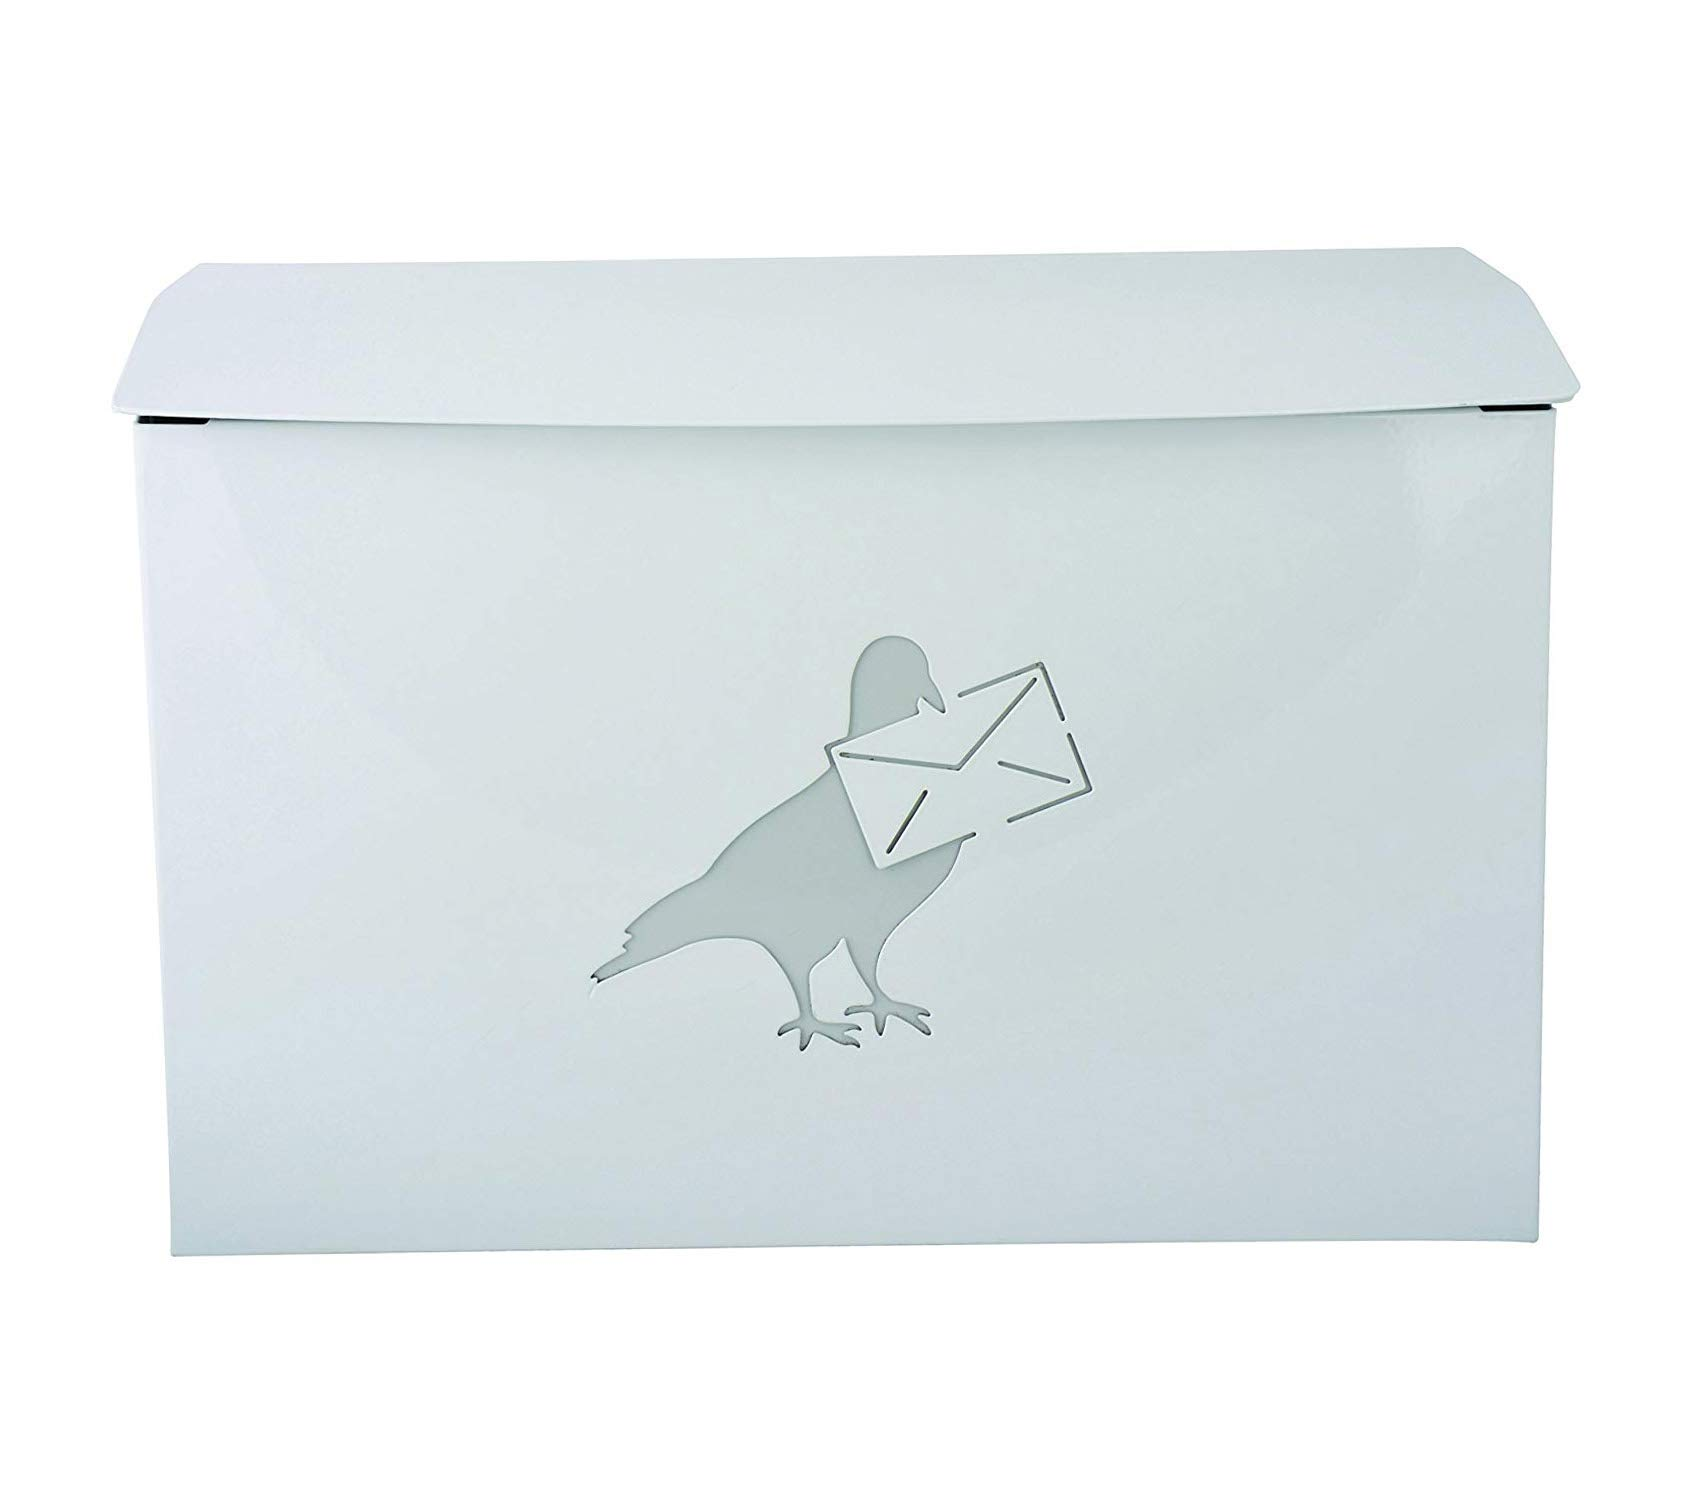 Outdoor Garden Backyard Décor Mailbox with Dove Design